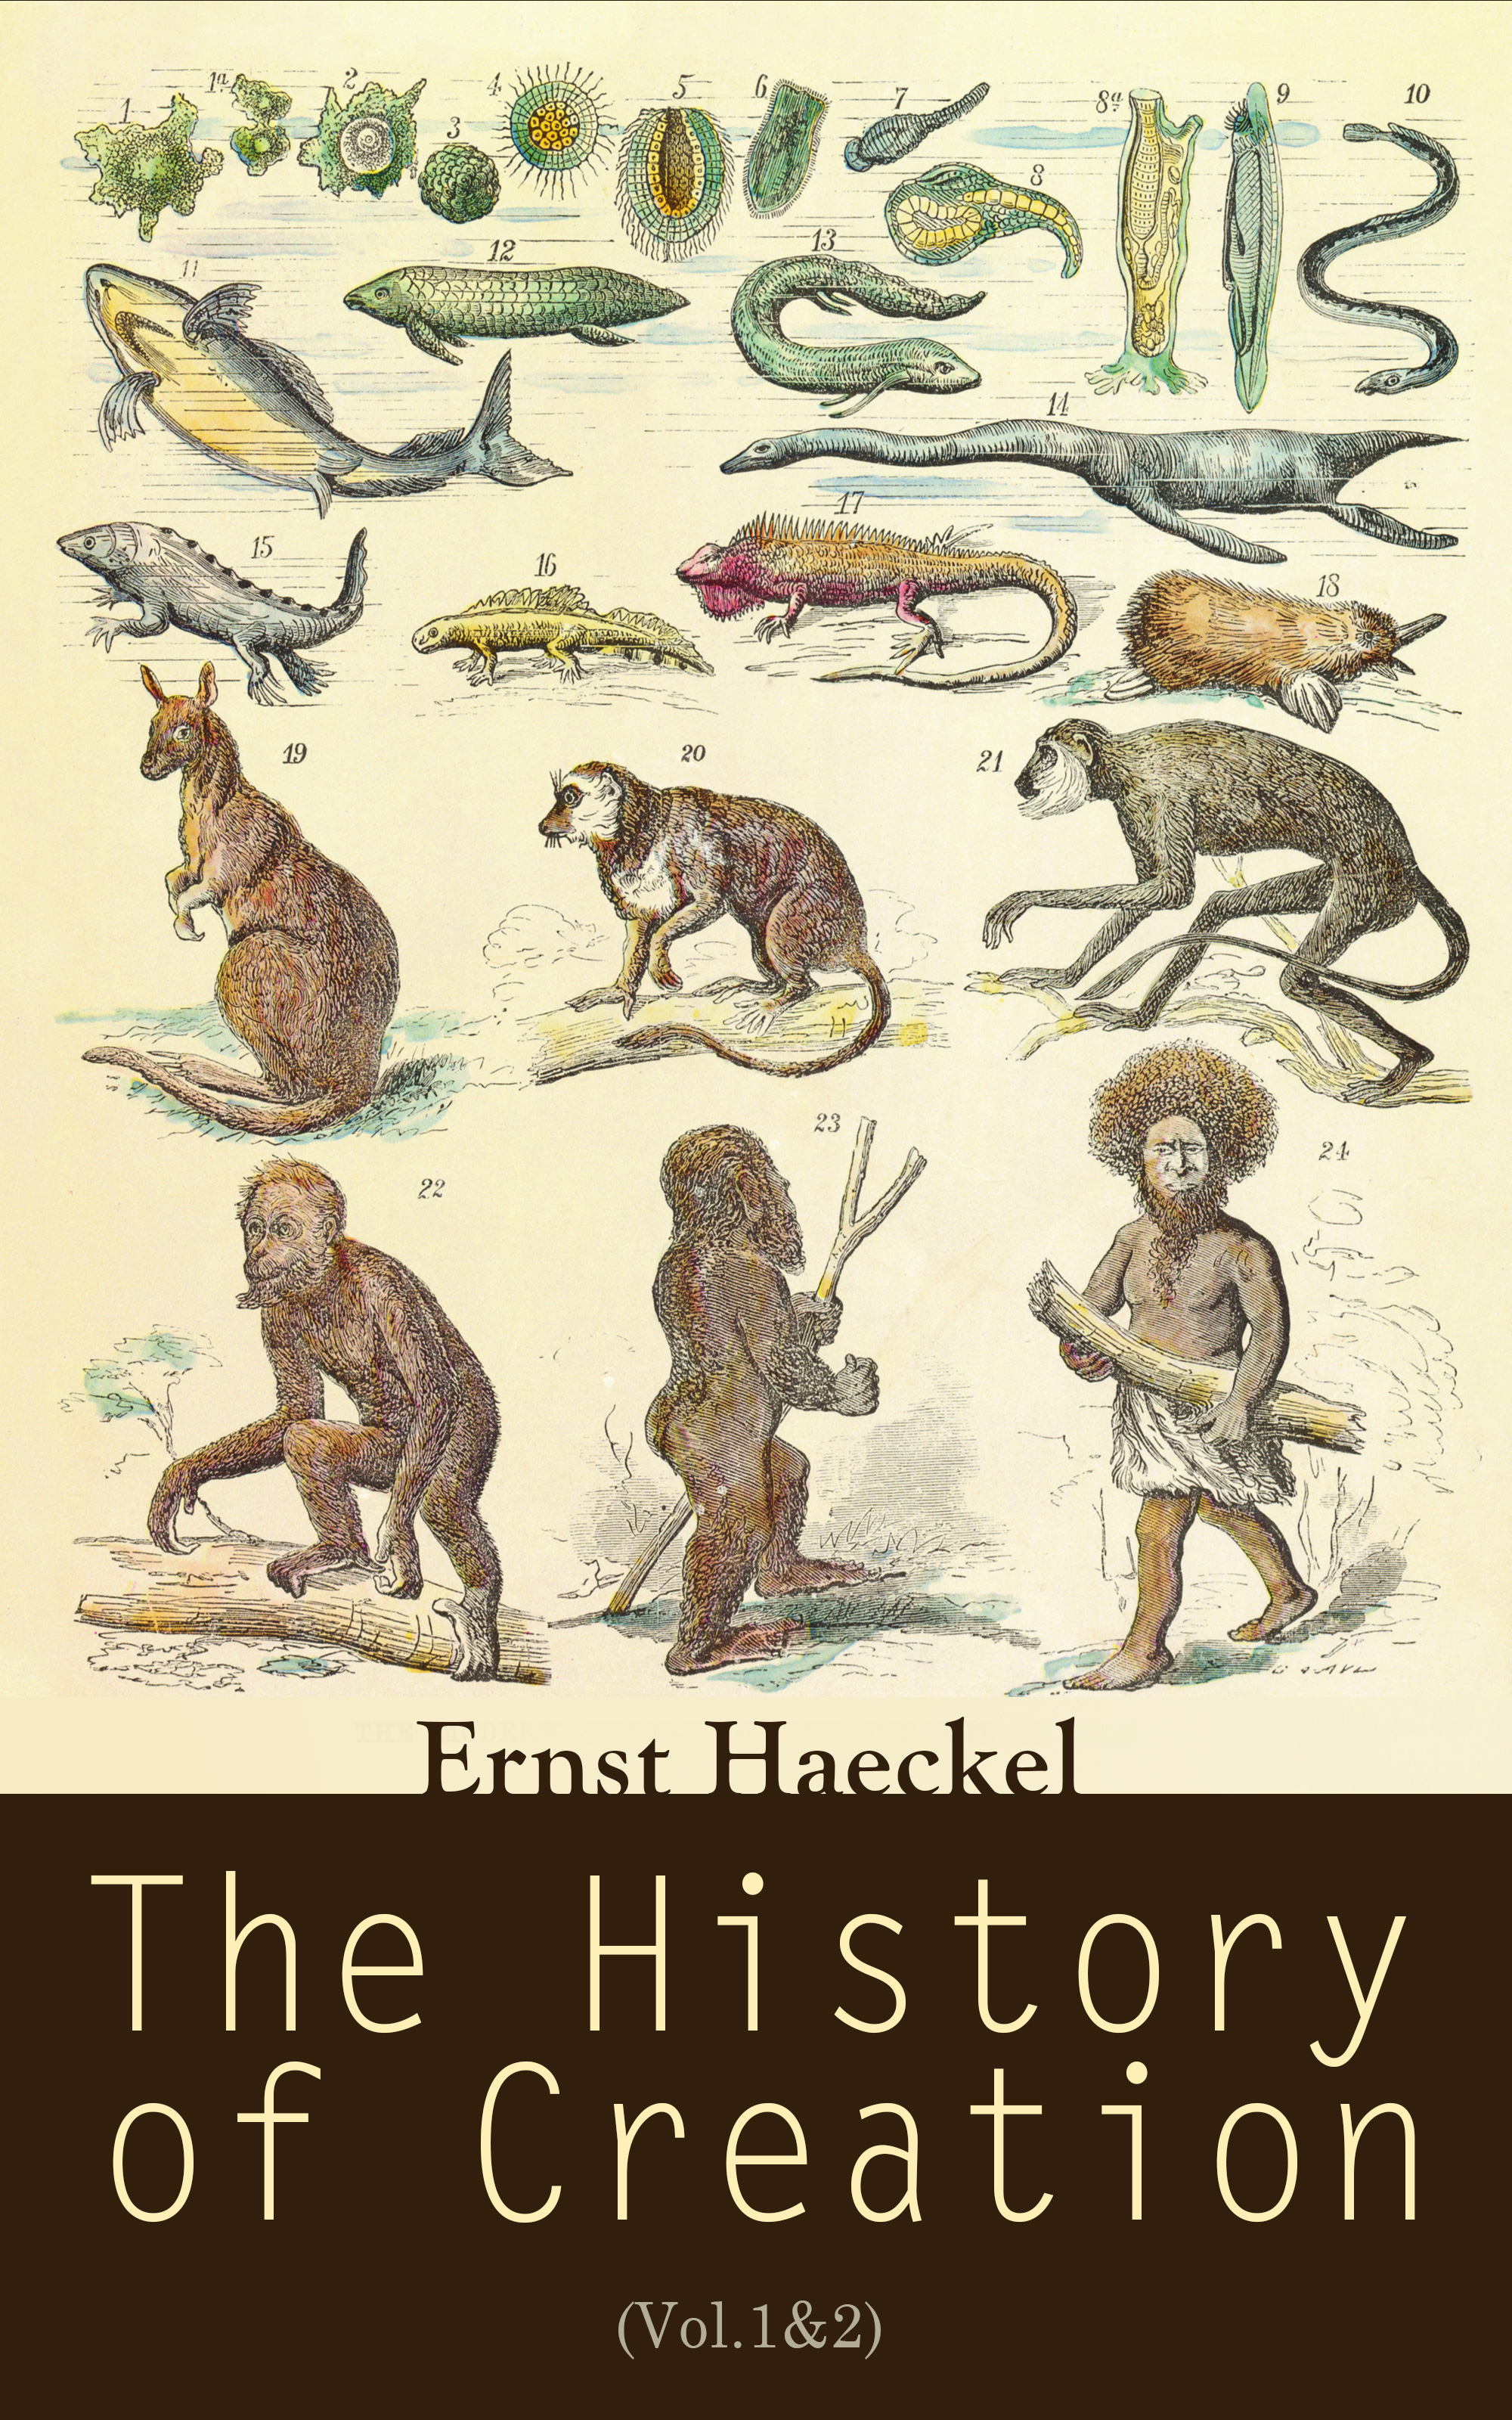 Ernst Haeckel The History of Creation (Vol.1&2)